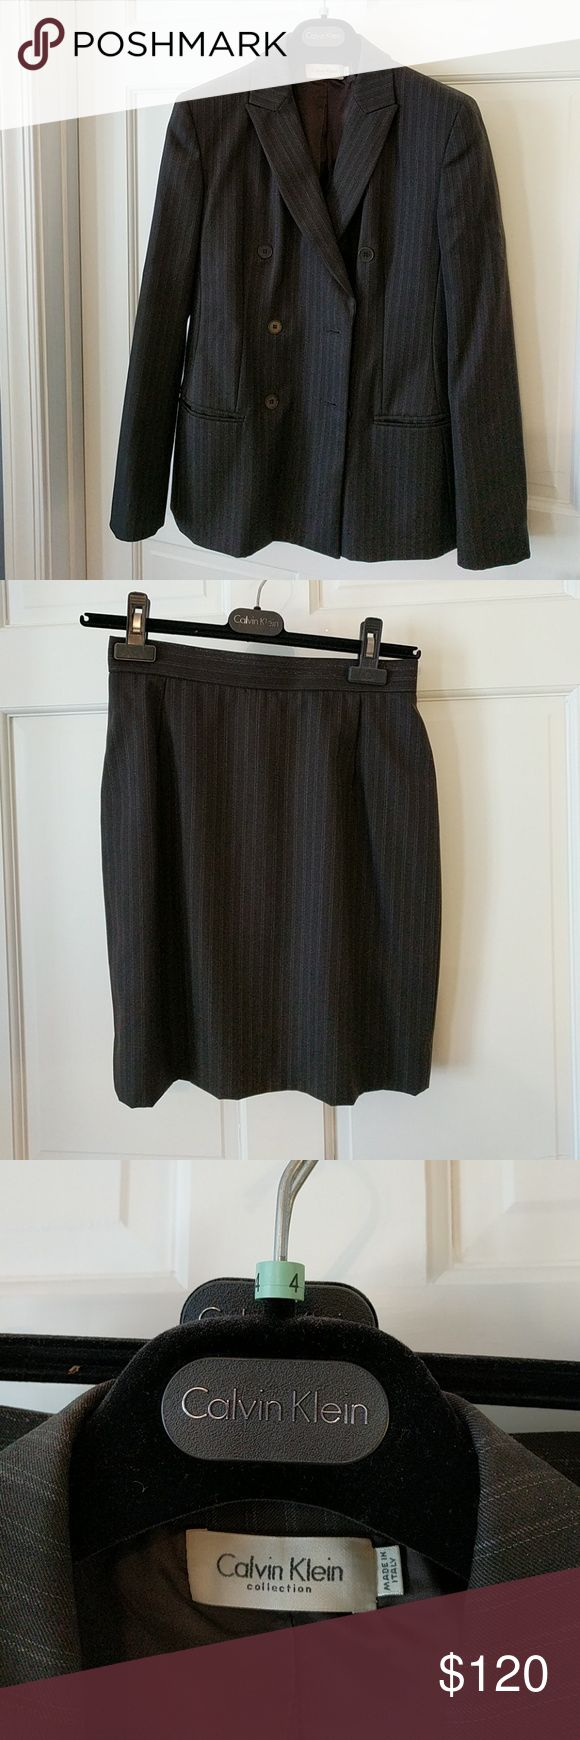 Calvin Klein 100% Wool 2 Piece Suit Calvin Klein 100% Wool suit with double breasted jacket as skirt. Black pinstripe. Size 4. Calvin Klein Collection Skirts Skirt Sets